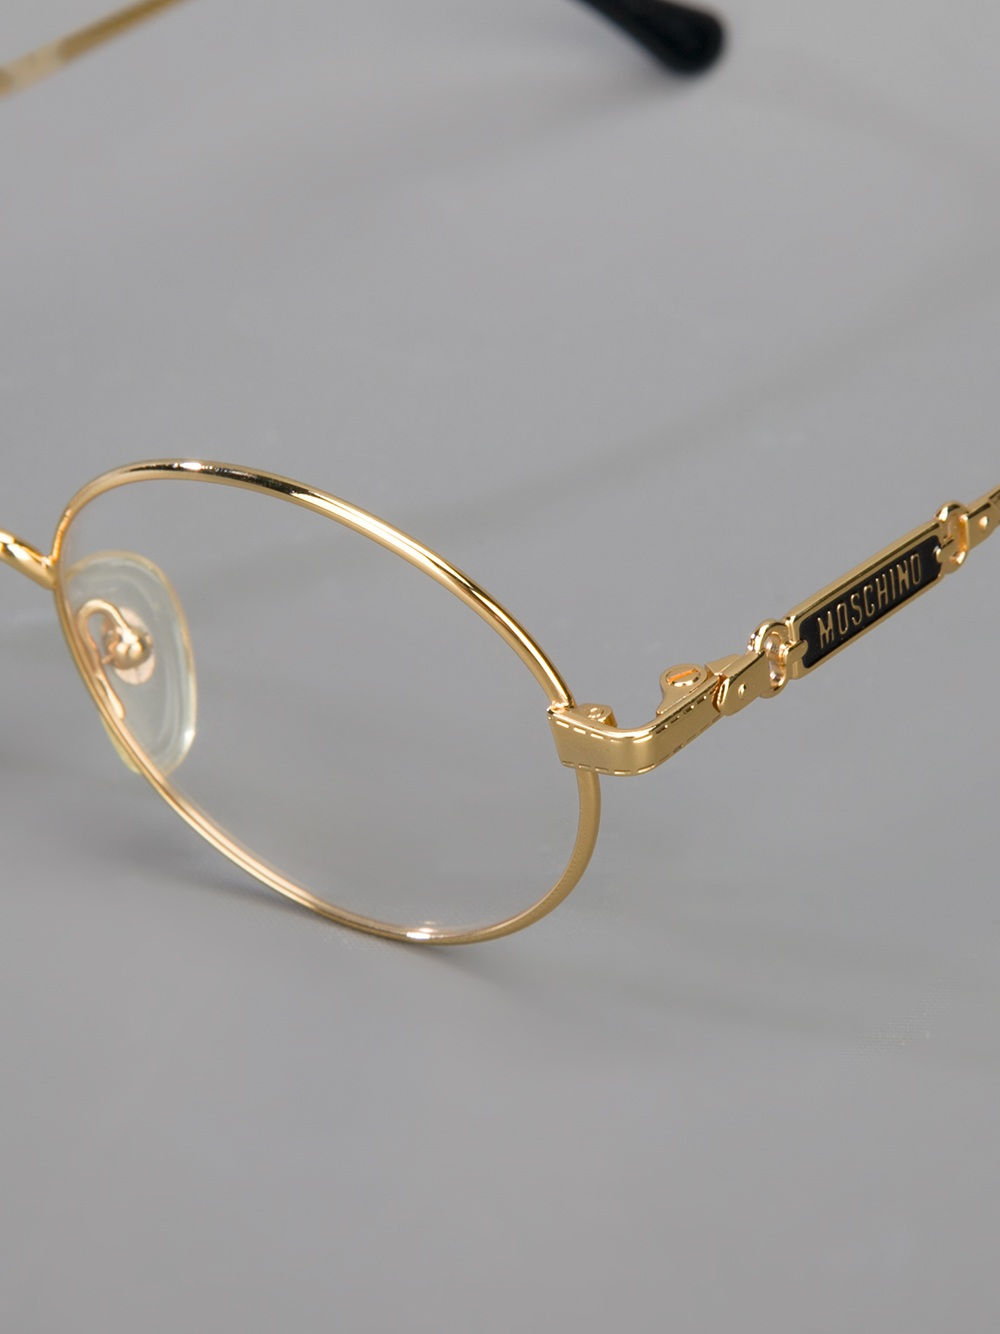 Moschino Round Frame Glasses In Metallic Lyst